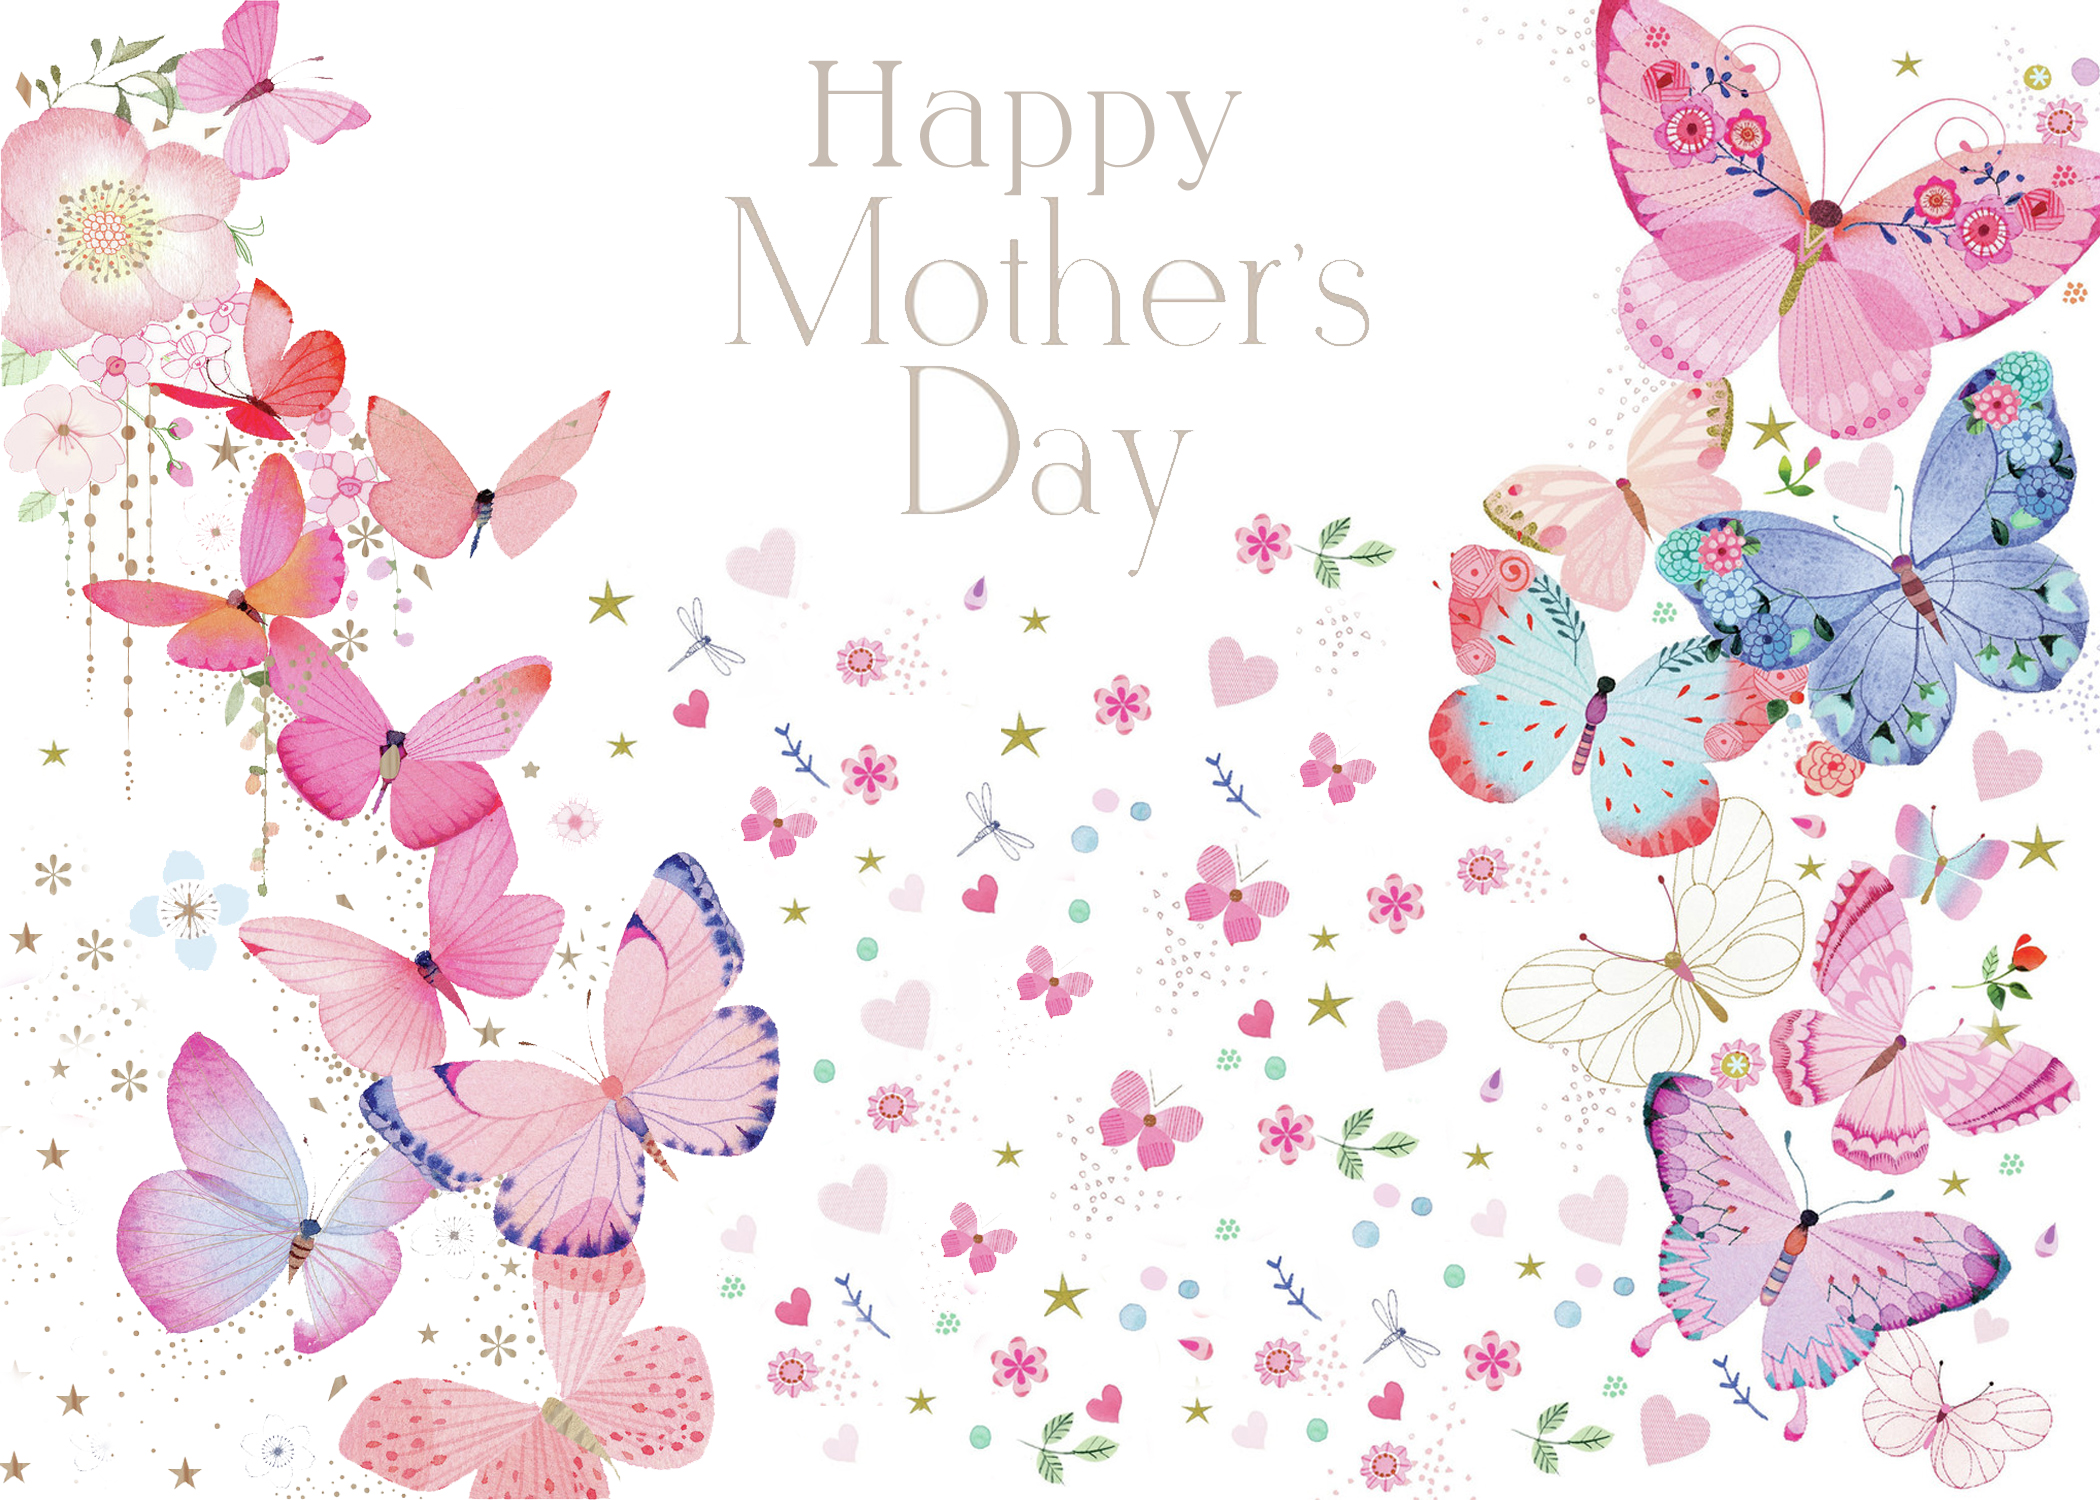 Image 1 of mother's day designs